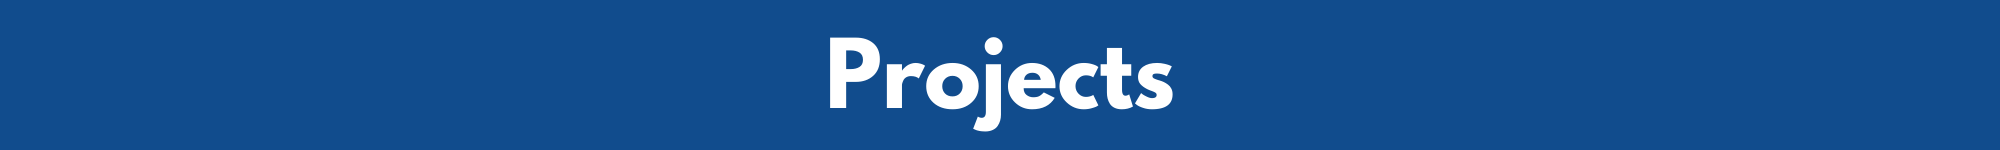 'Projects', Blue background